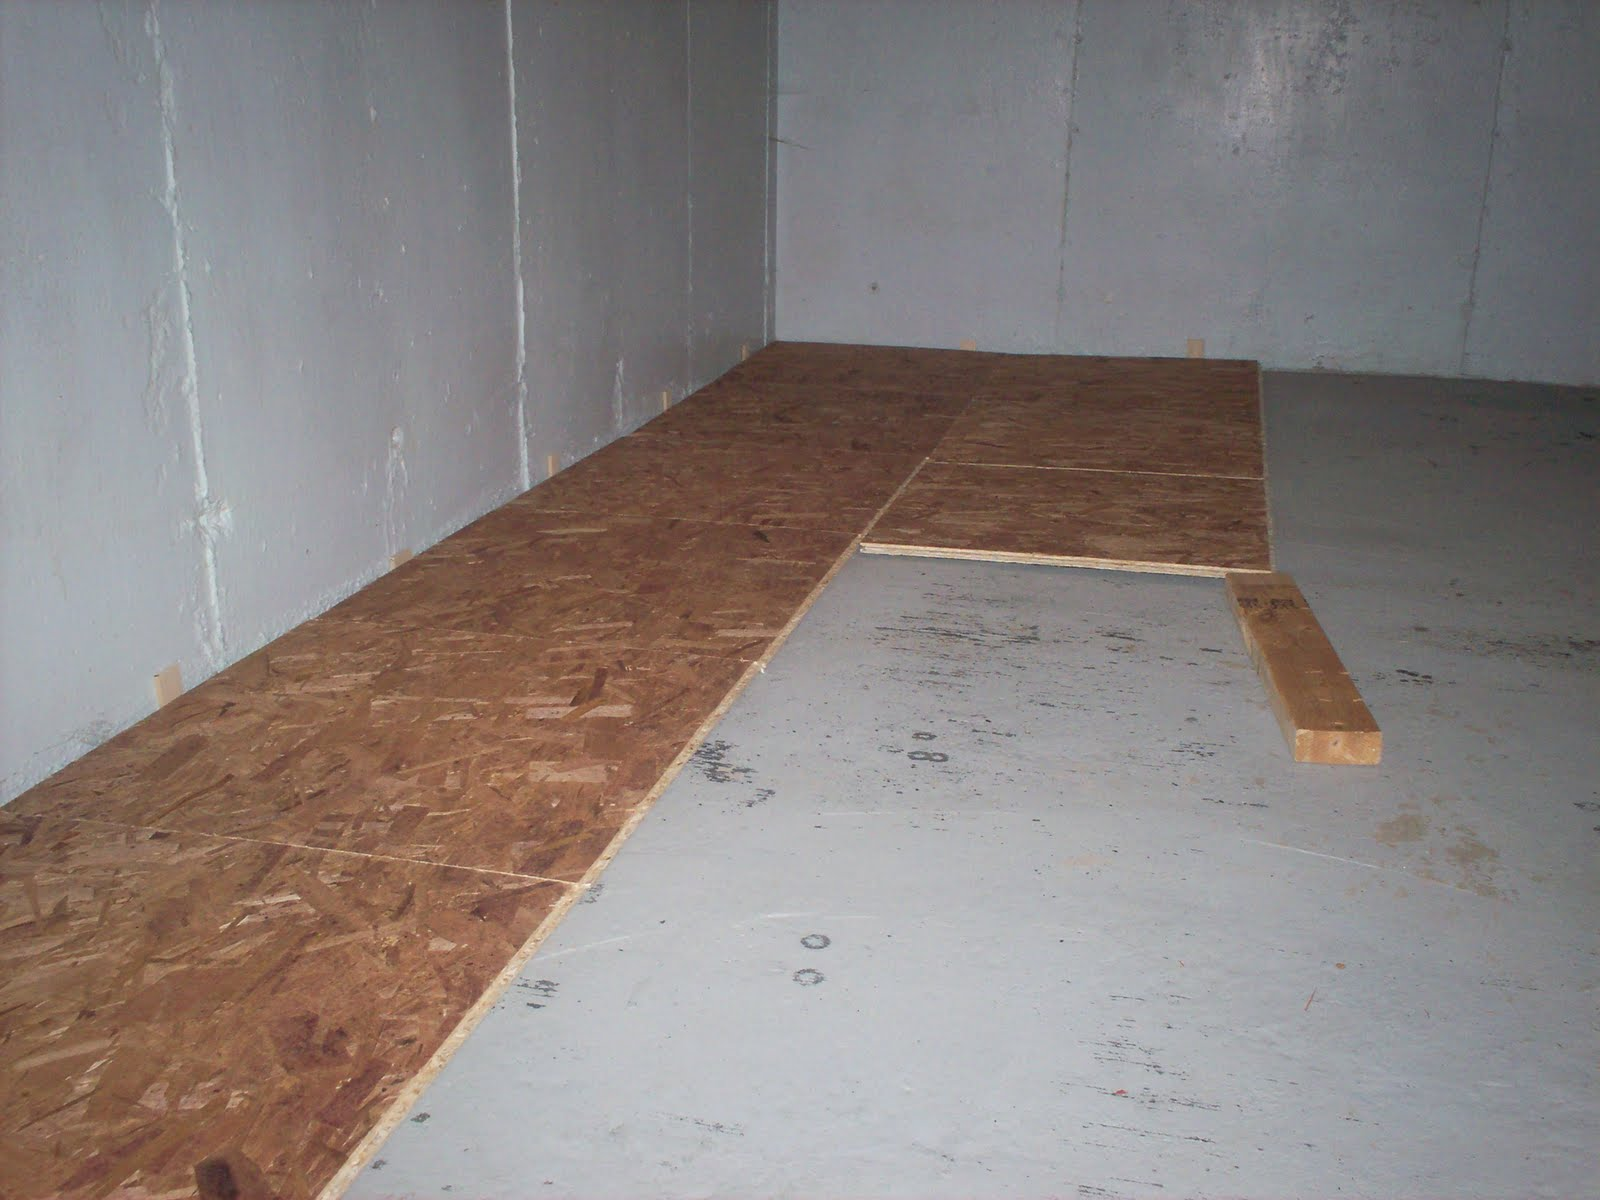 Top 28 i a concrete subfloor subfloor on concrete for What is best for basement flooring over concrete